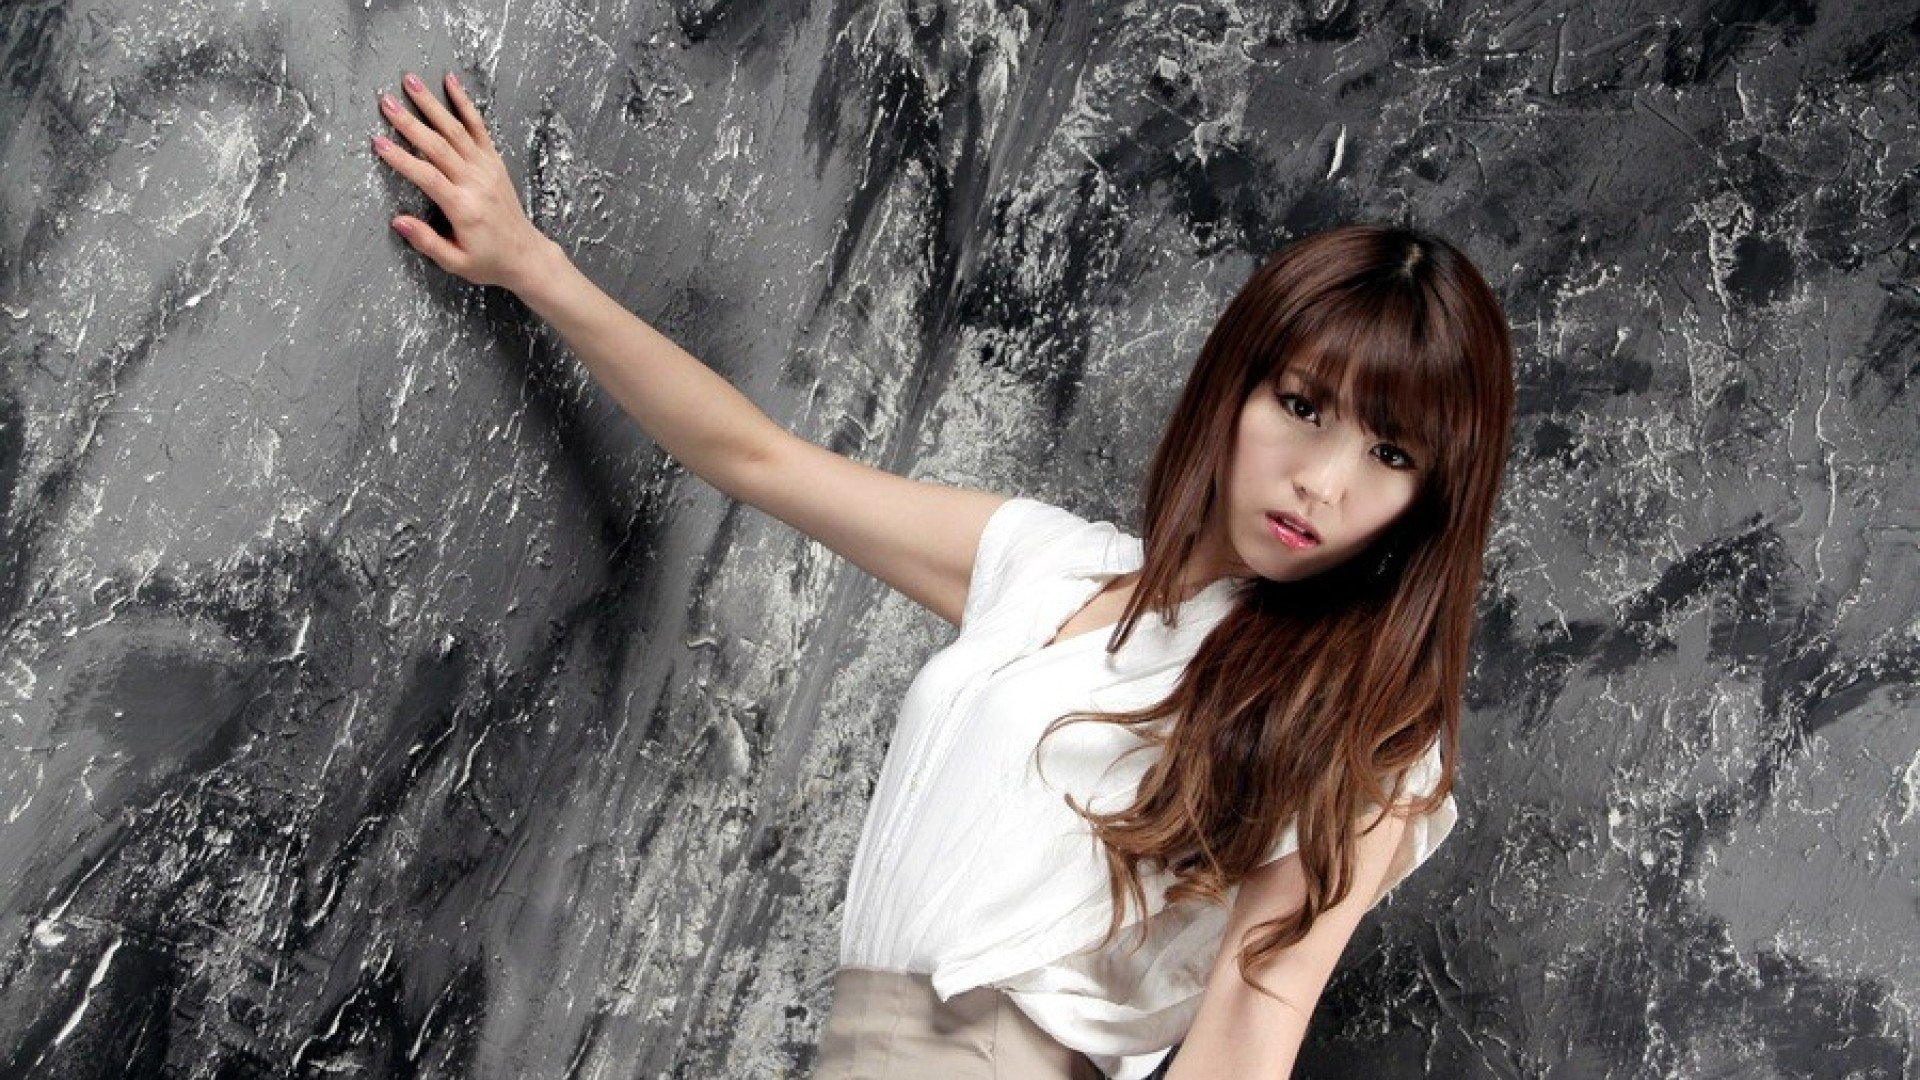 Wallpapers ID:461169